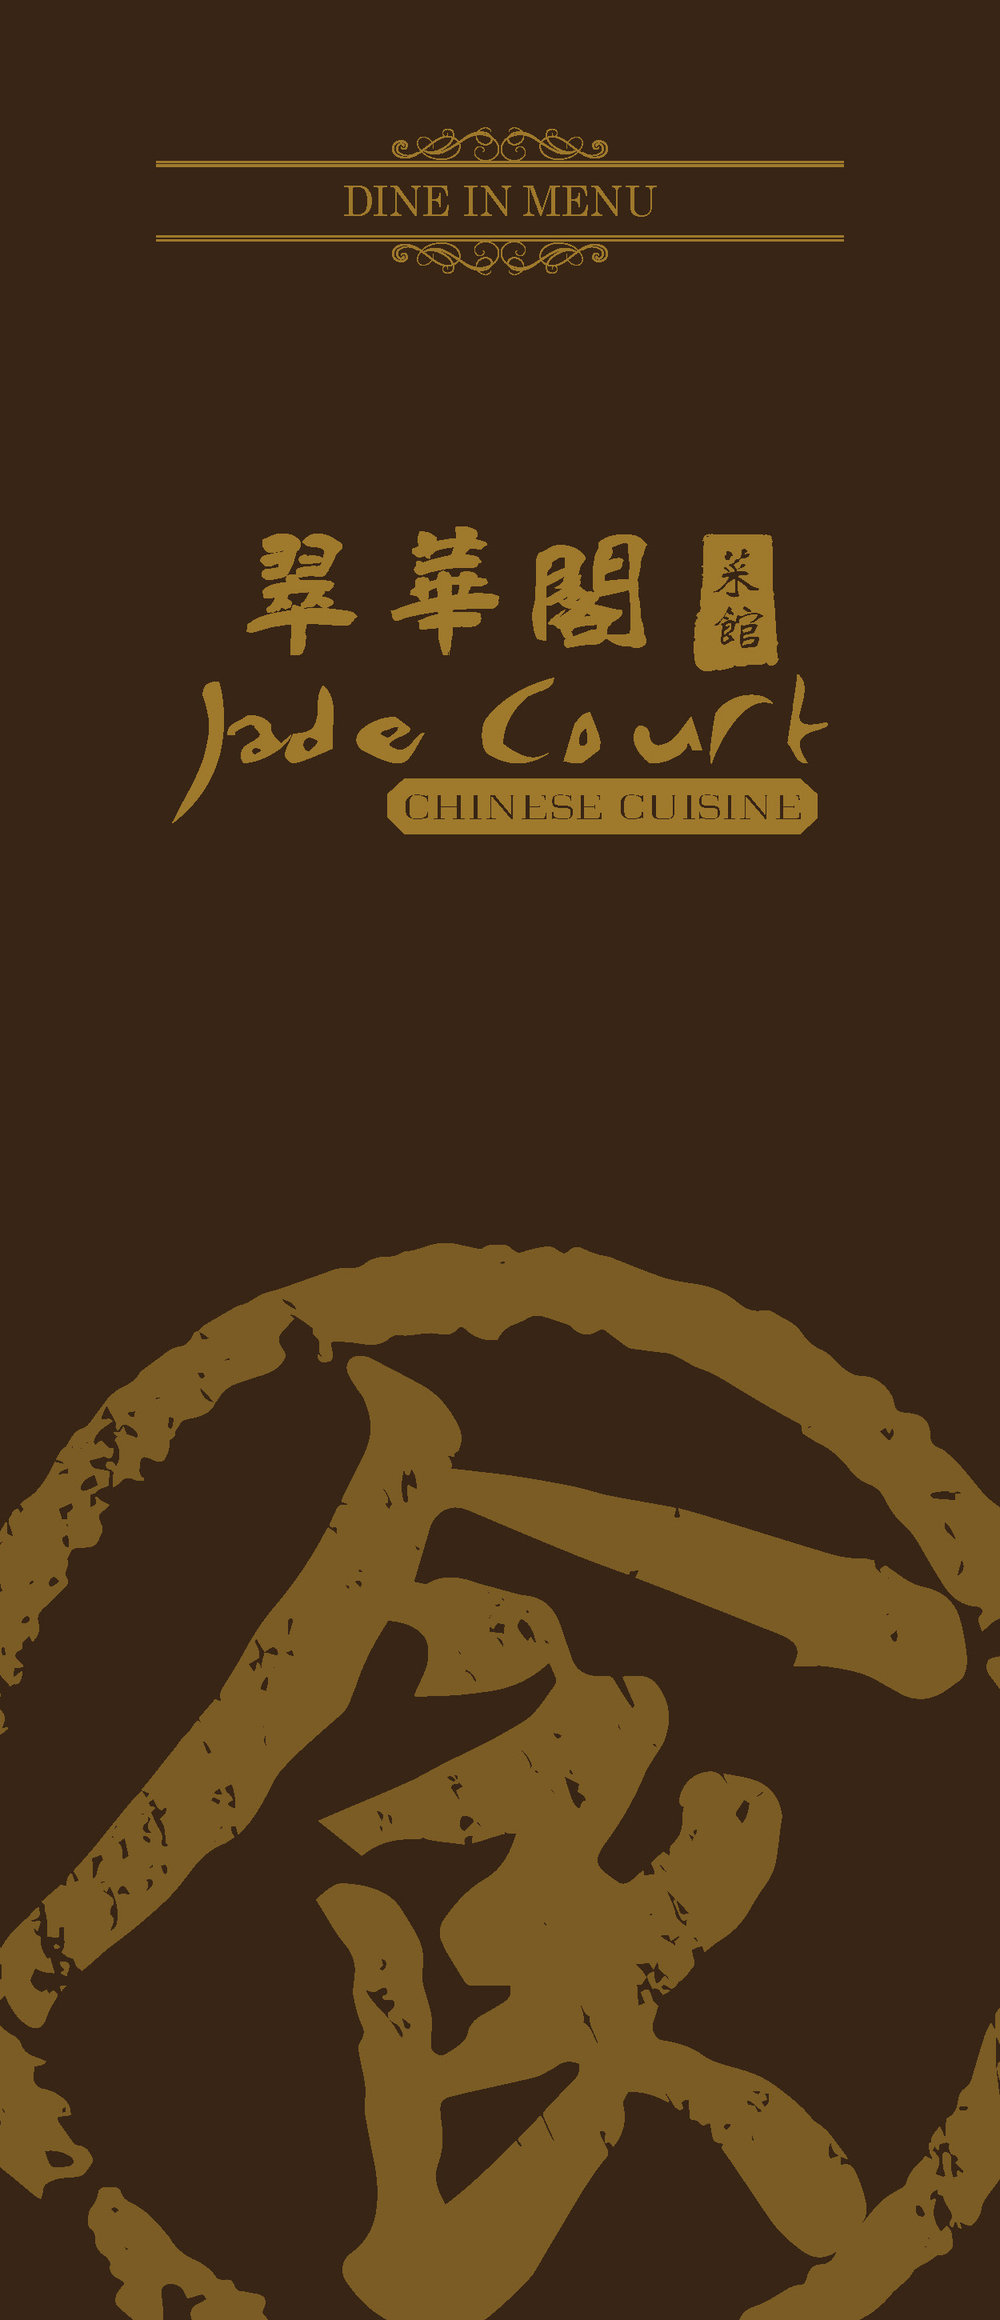 Jade Court Dine In Menu 16-08-02a_Page_01.jpg